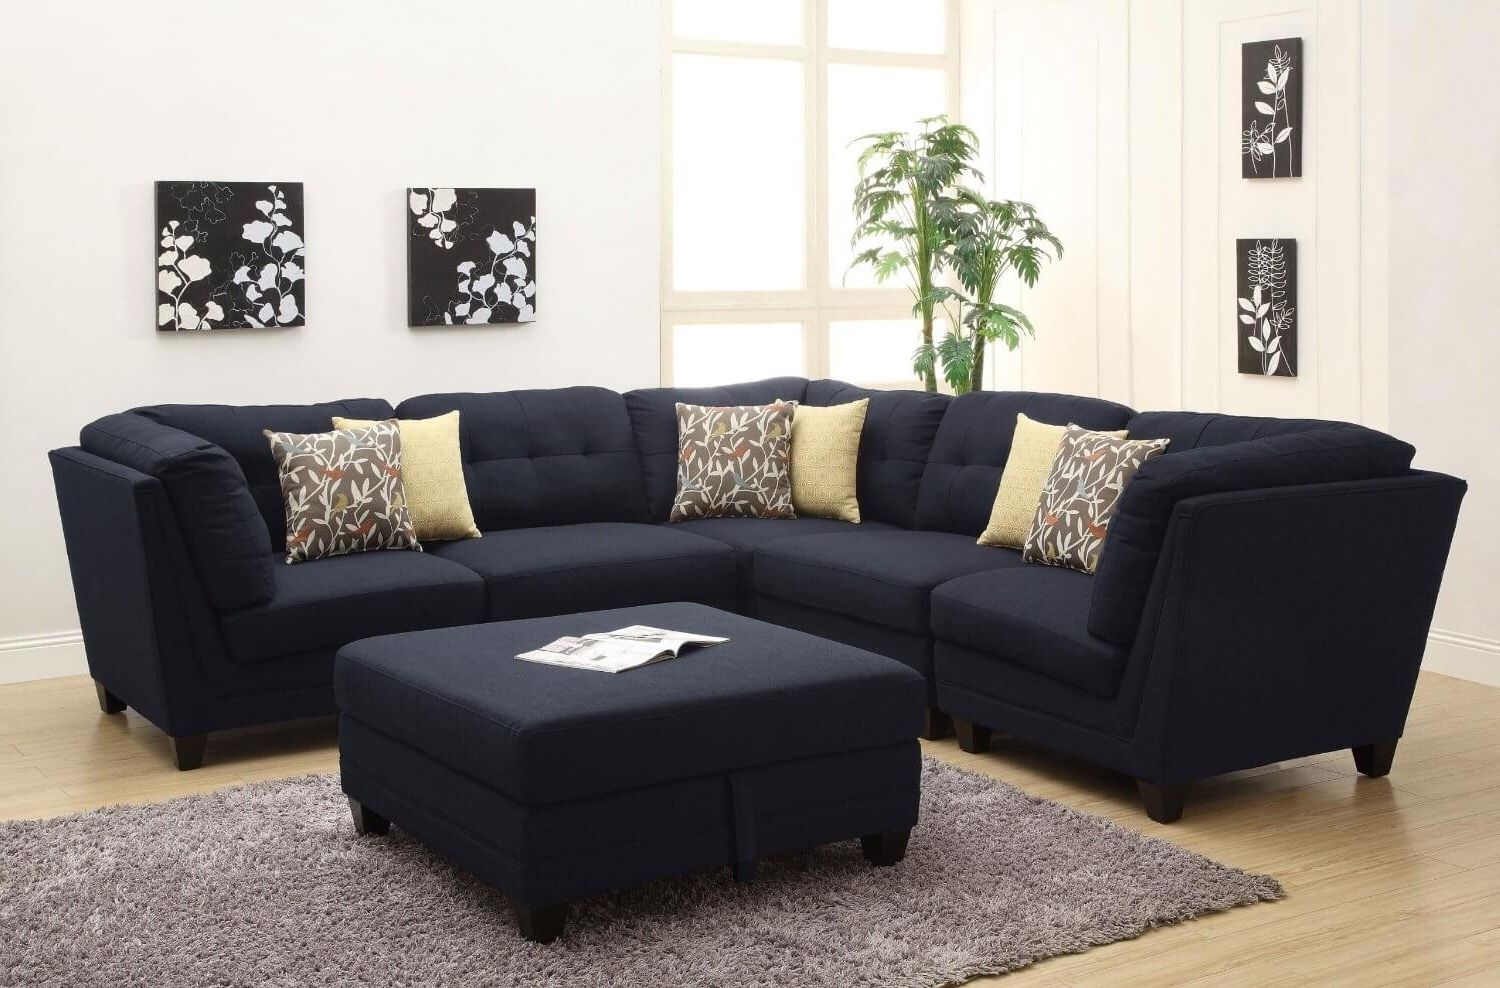 Most Recent 100 Awesome Sectional Sofas Under $1,000 (2018) With Sectional Sofas Under  (View 4 of 15)